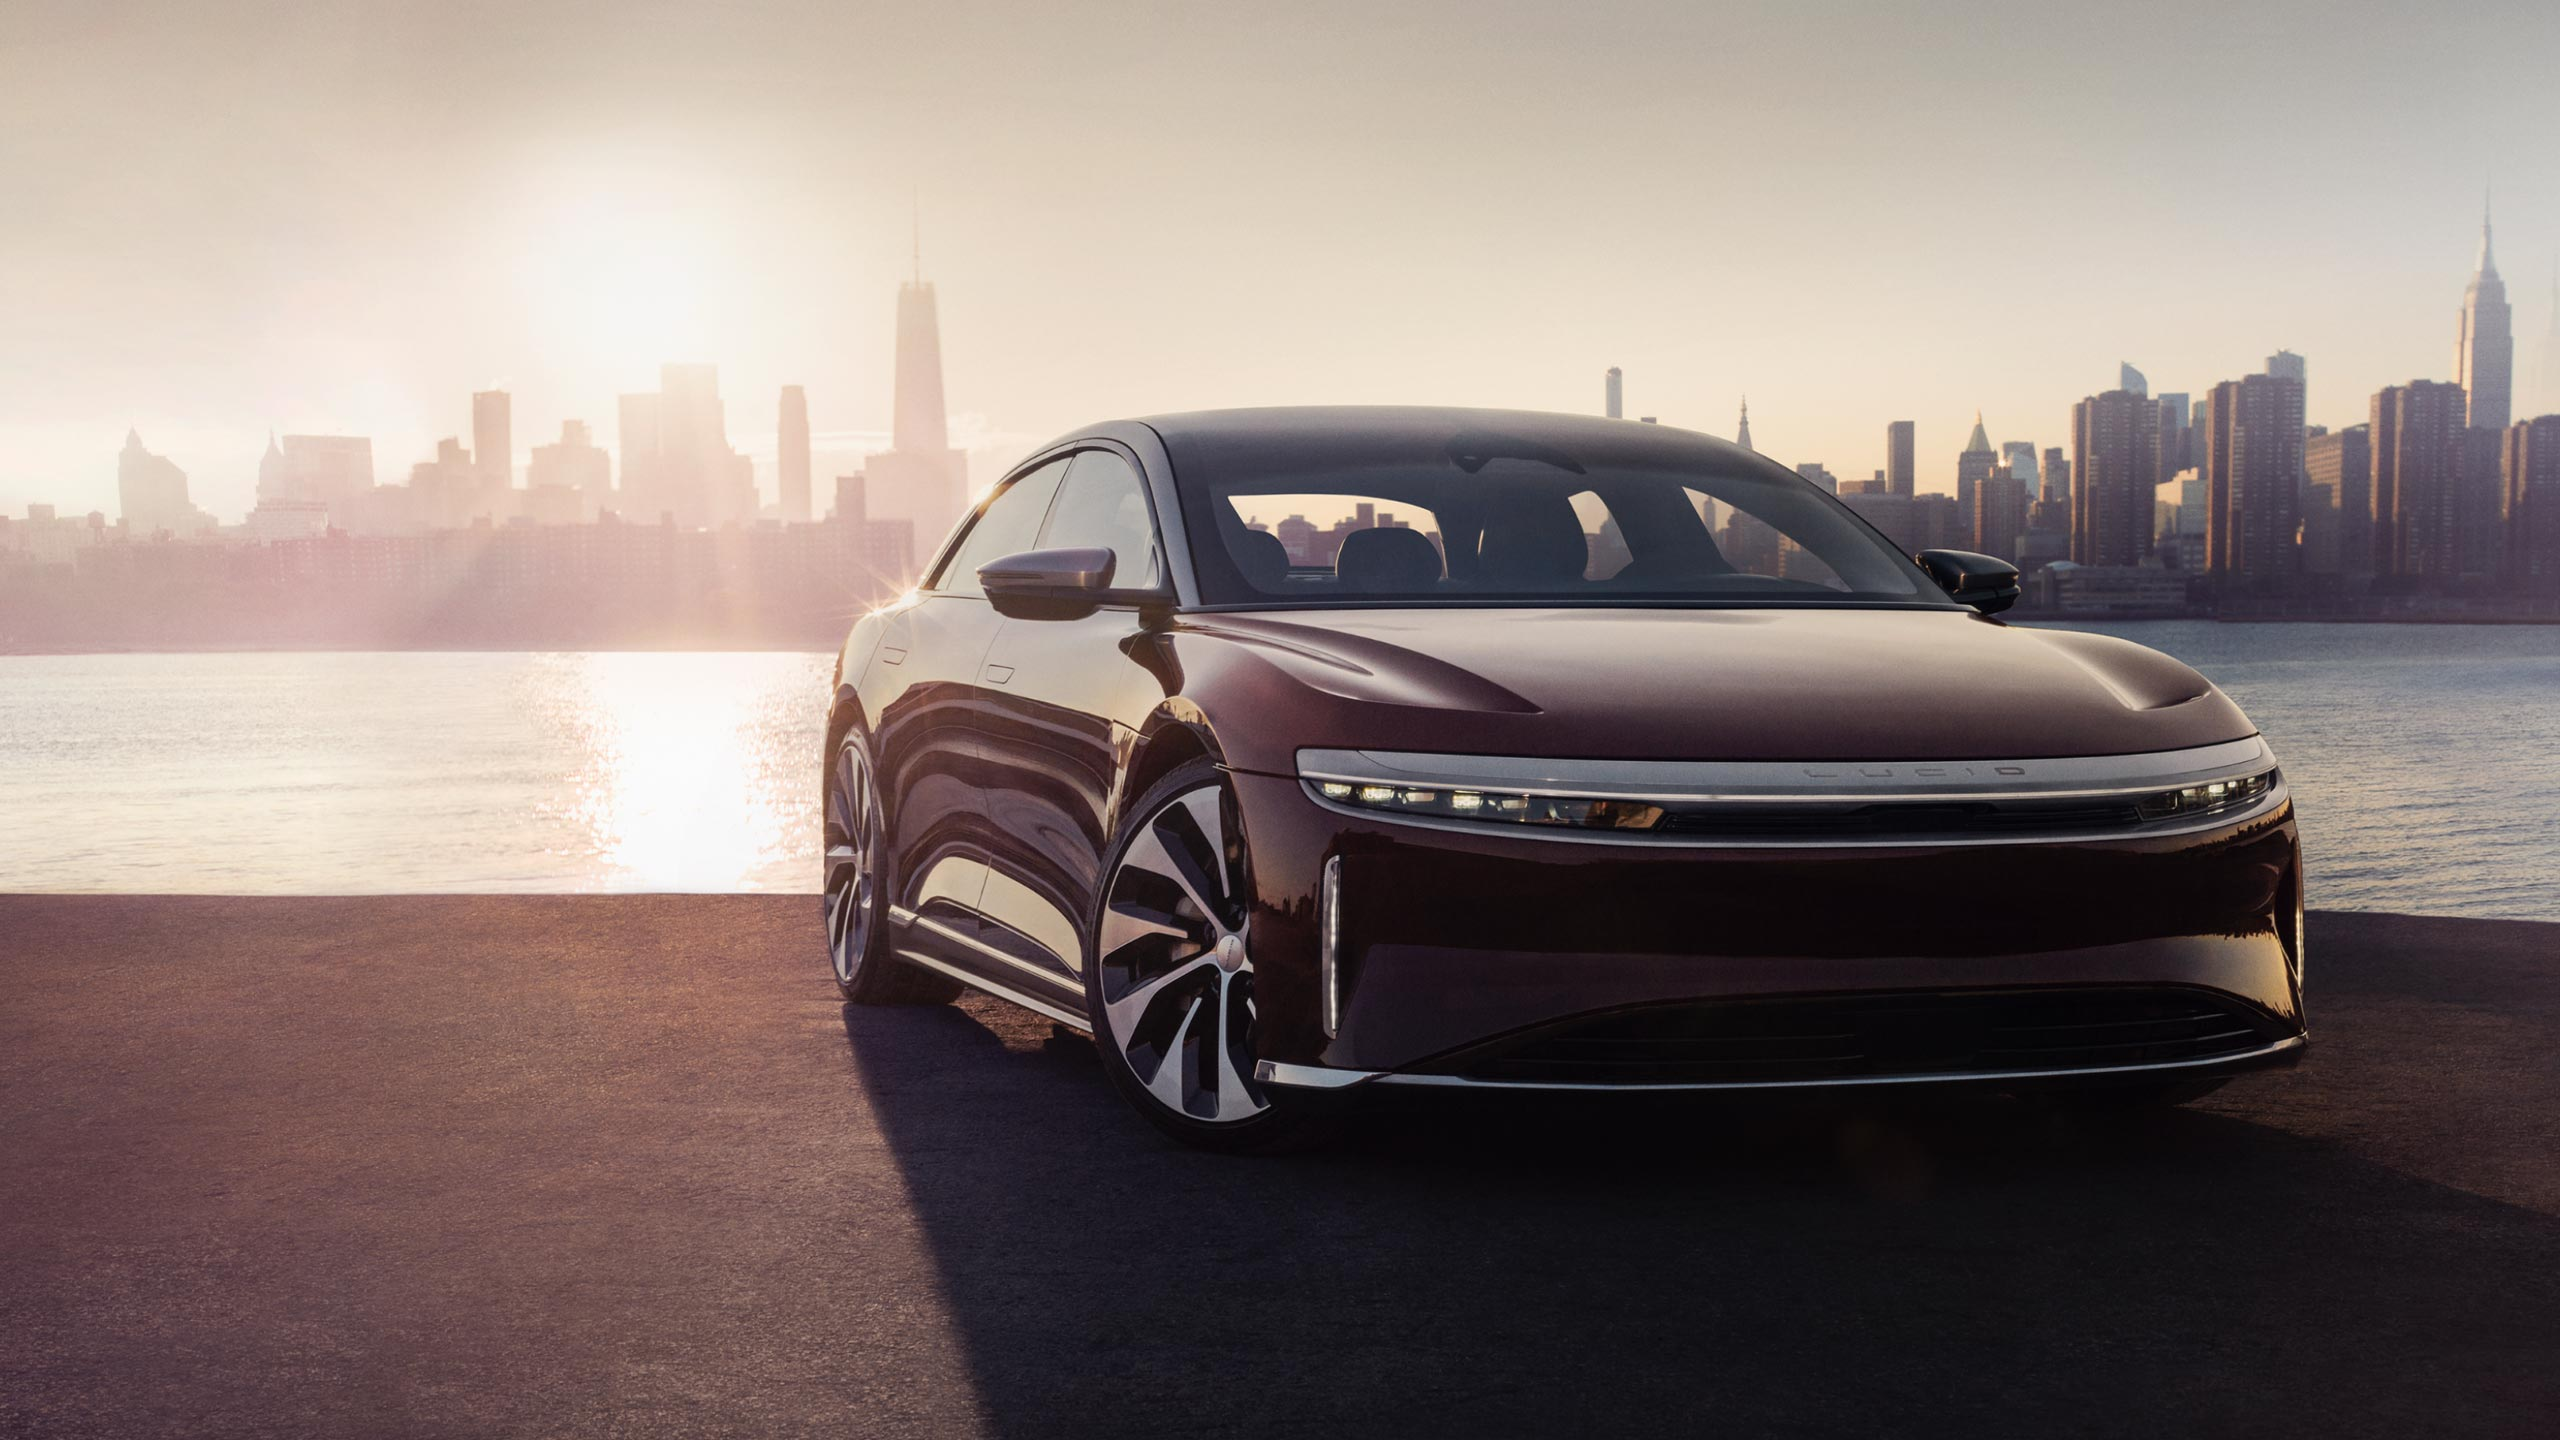 Specifications and price of Lucid Air in Nigeria